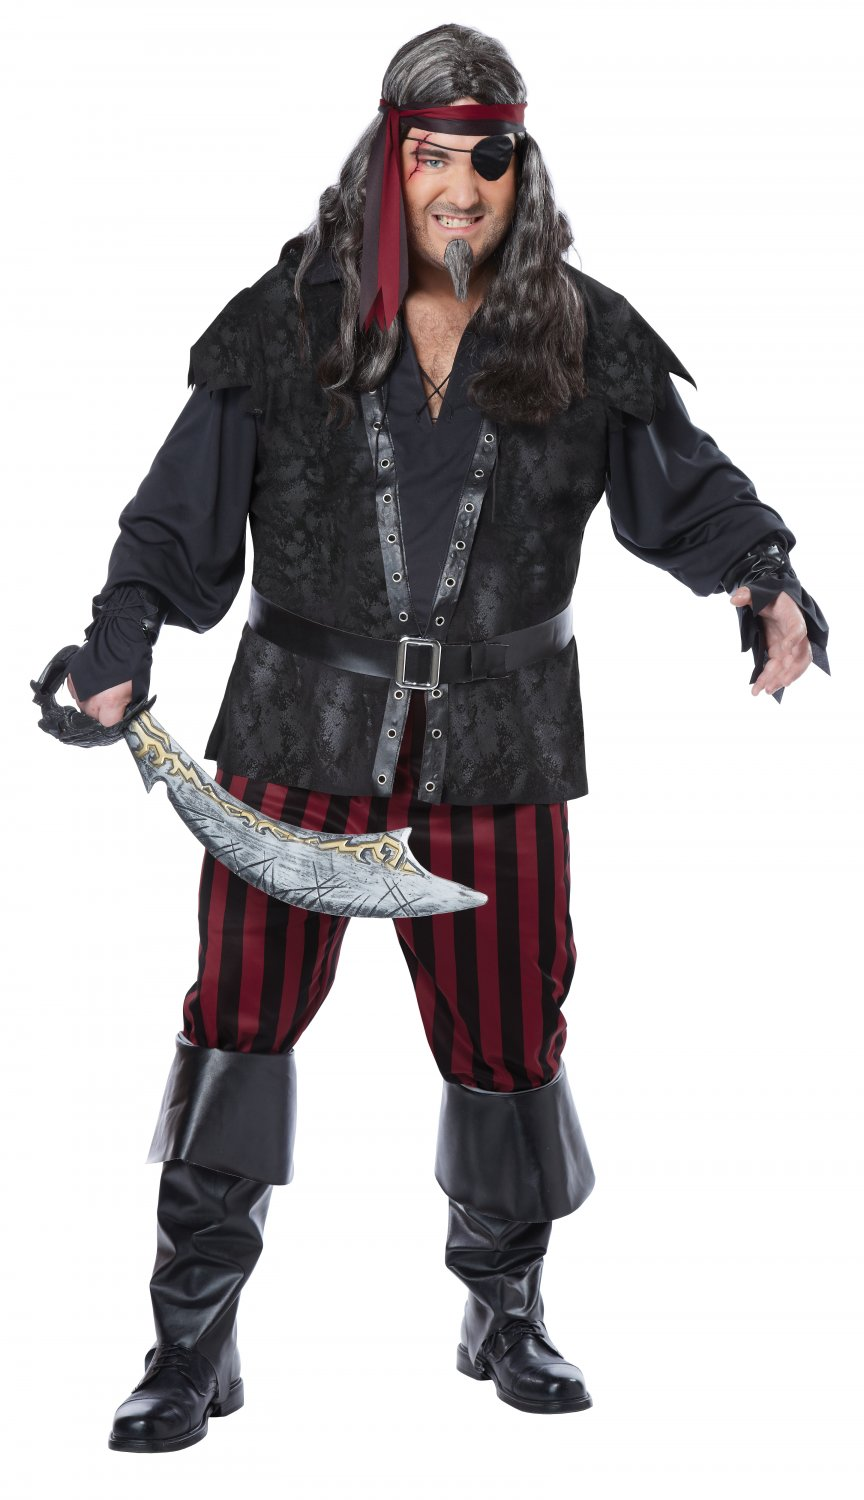 #01739   Jack Sparrow Gothic Buccaneer Pirate Ruthless Rogue Plus Size Adult Costume